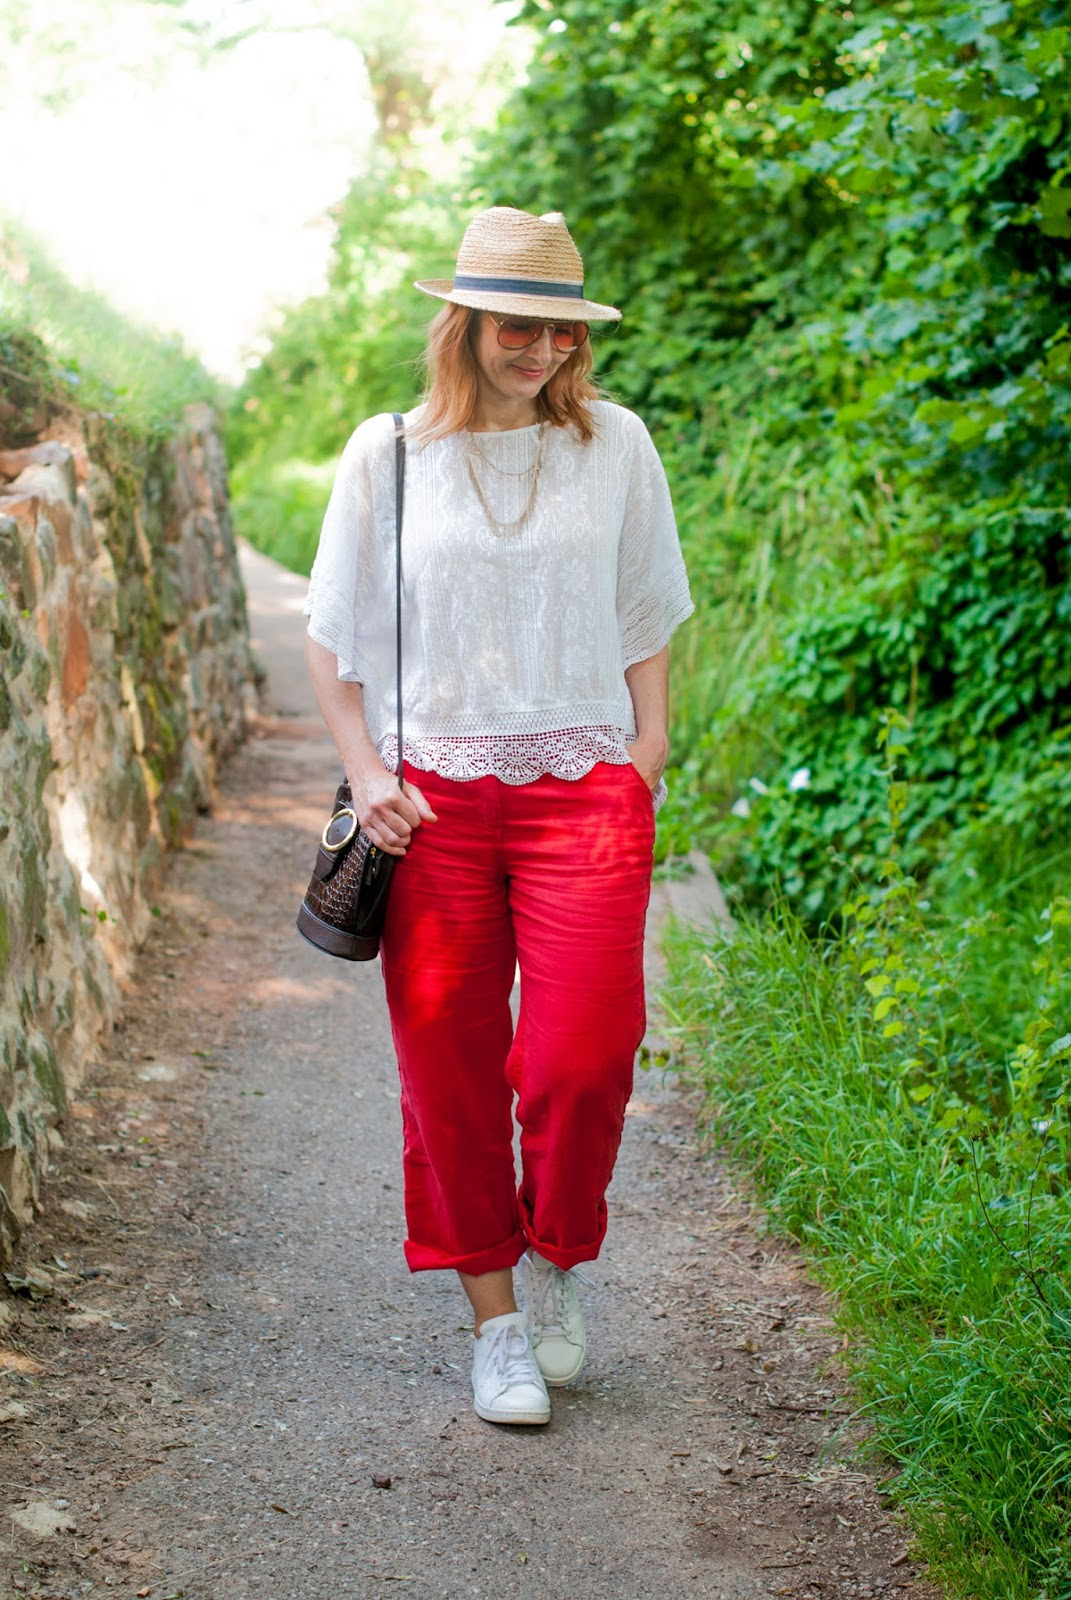 Red and white: A bold summer combination \ loose white lace top \ red wide leg linen pants \ straw hat \ white Adidas Stan Smiths \ orange tint aviator sunglasses | Not Dressed As Lamb, over 40 style